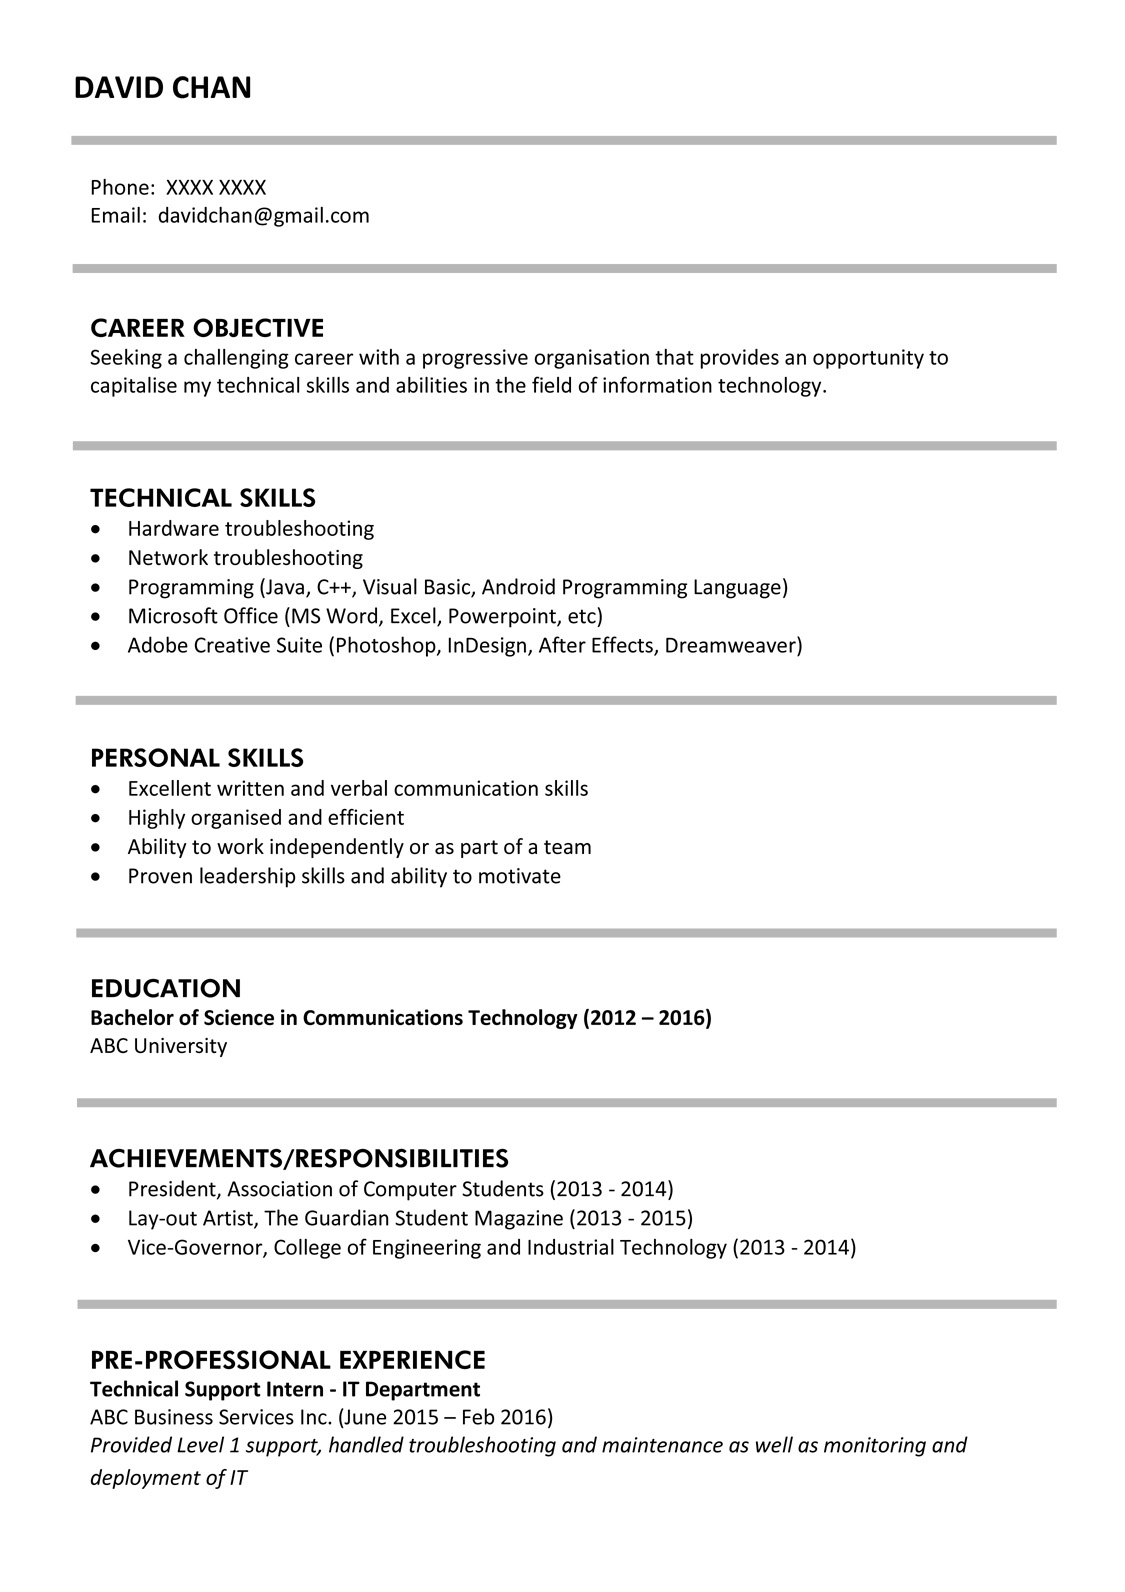 Best Resume Objective Statement Customer Service Top Persuasive